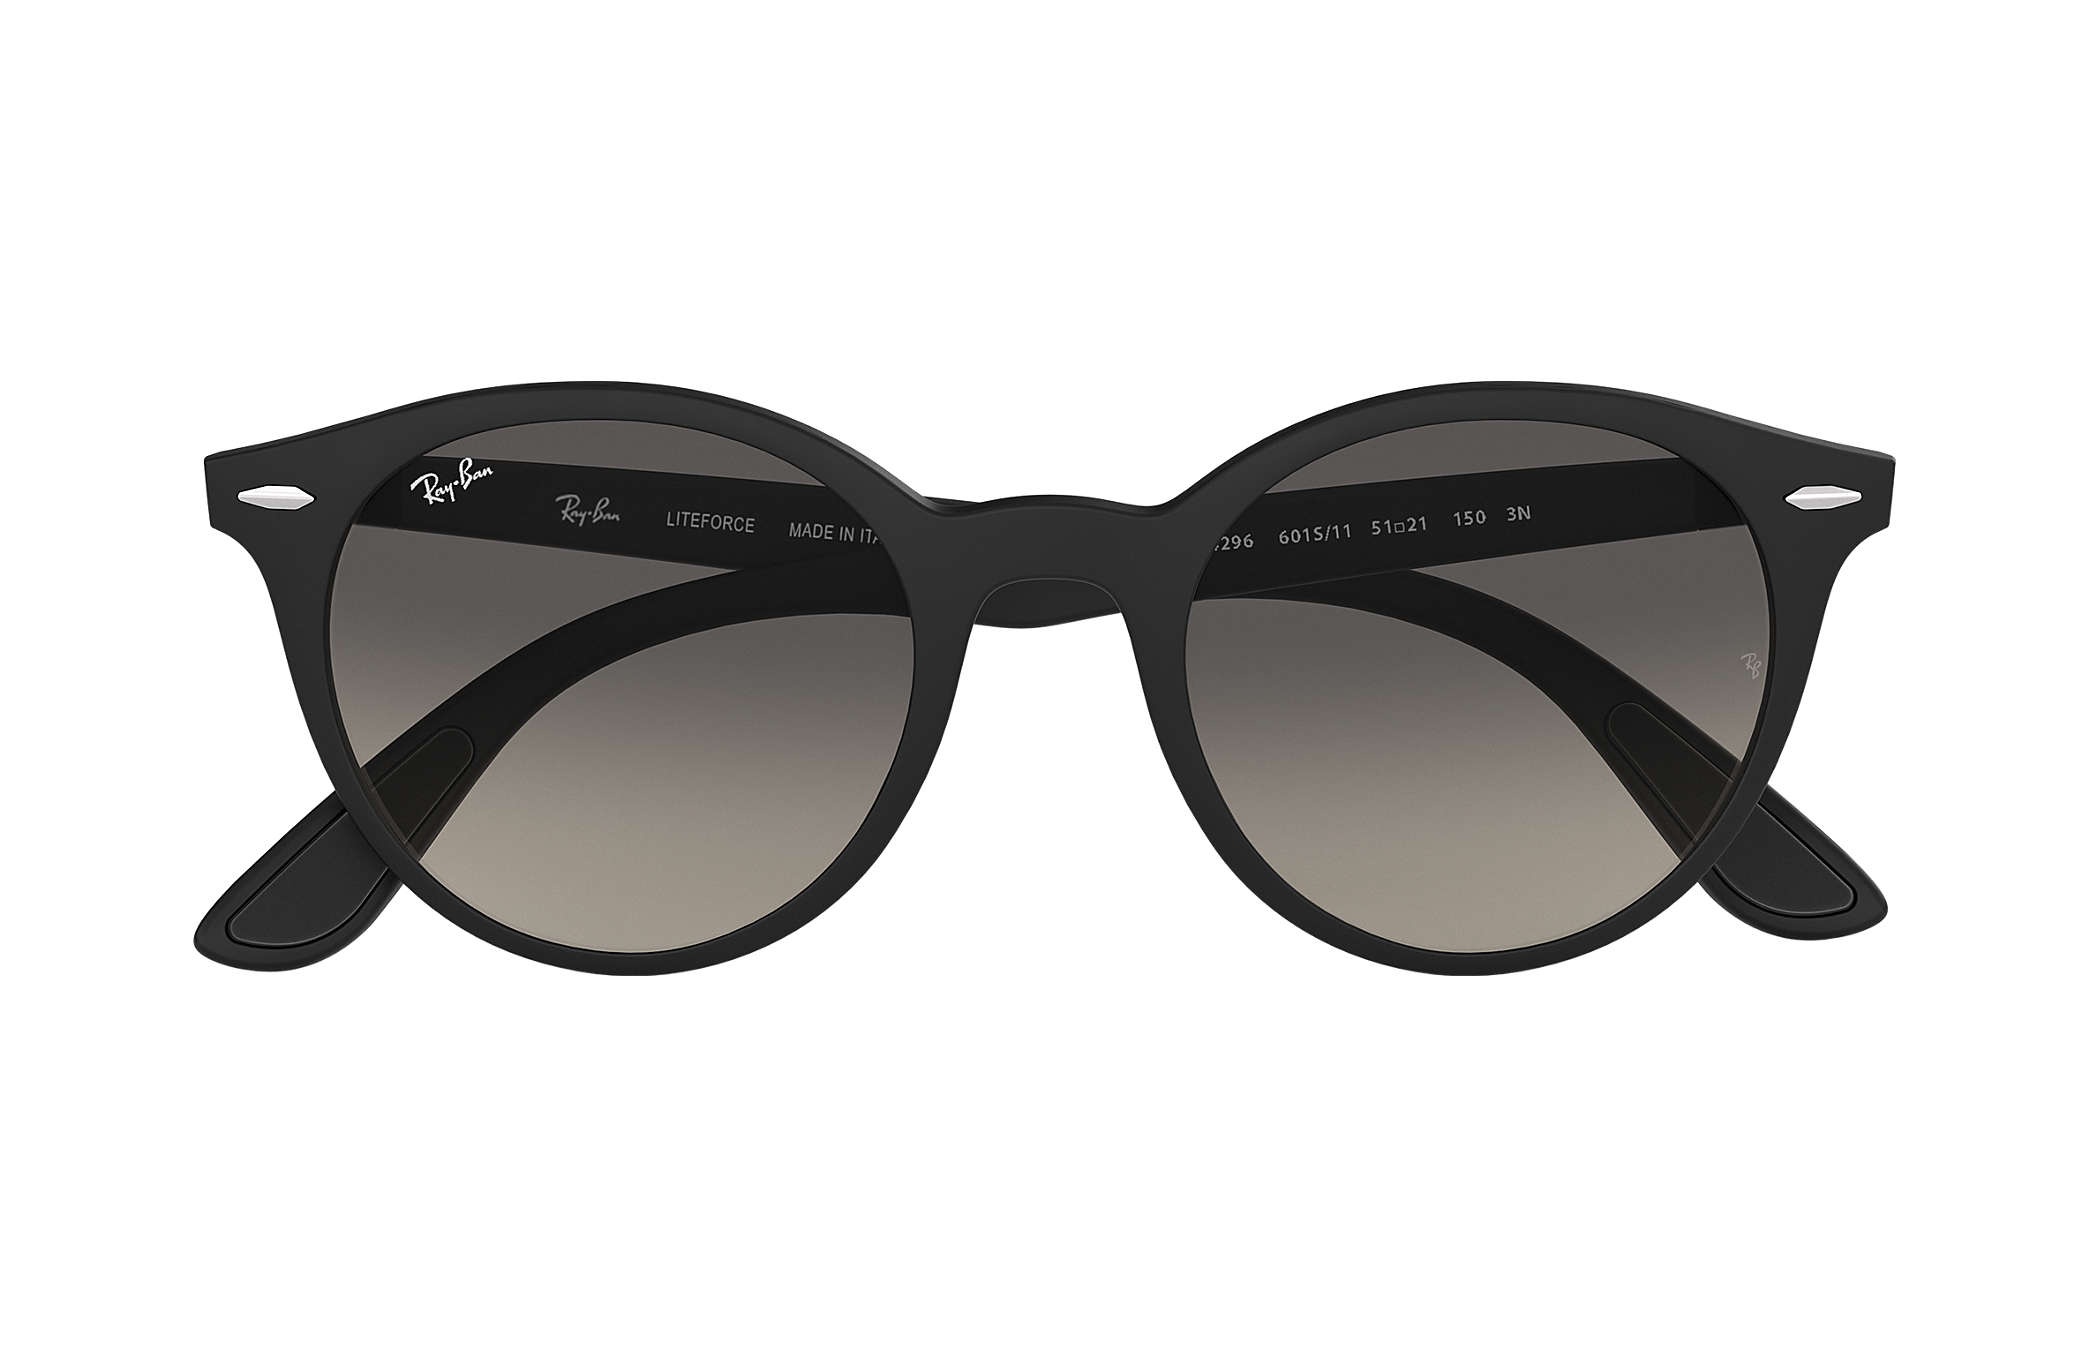 Ray Ban RB 4296 - Liteforce RB 4296 601S11 hlZTv5